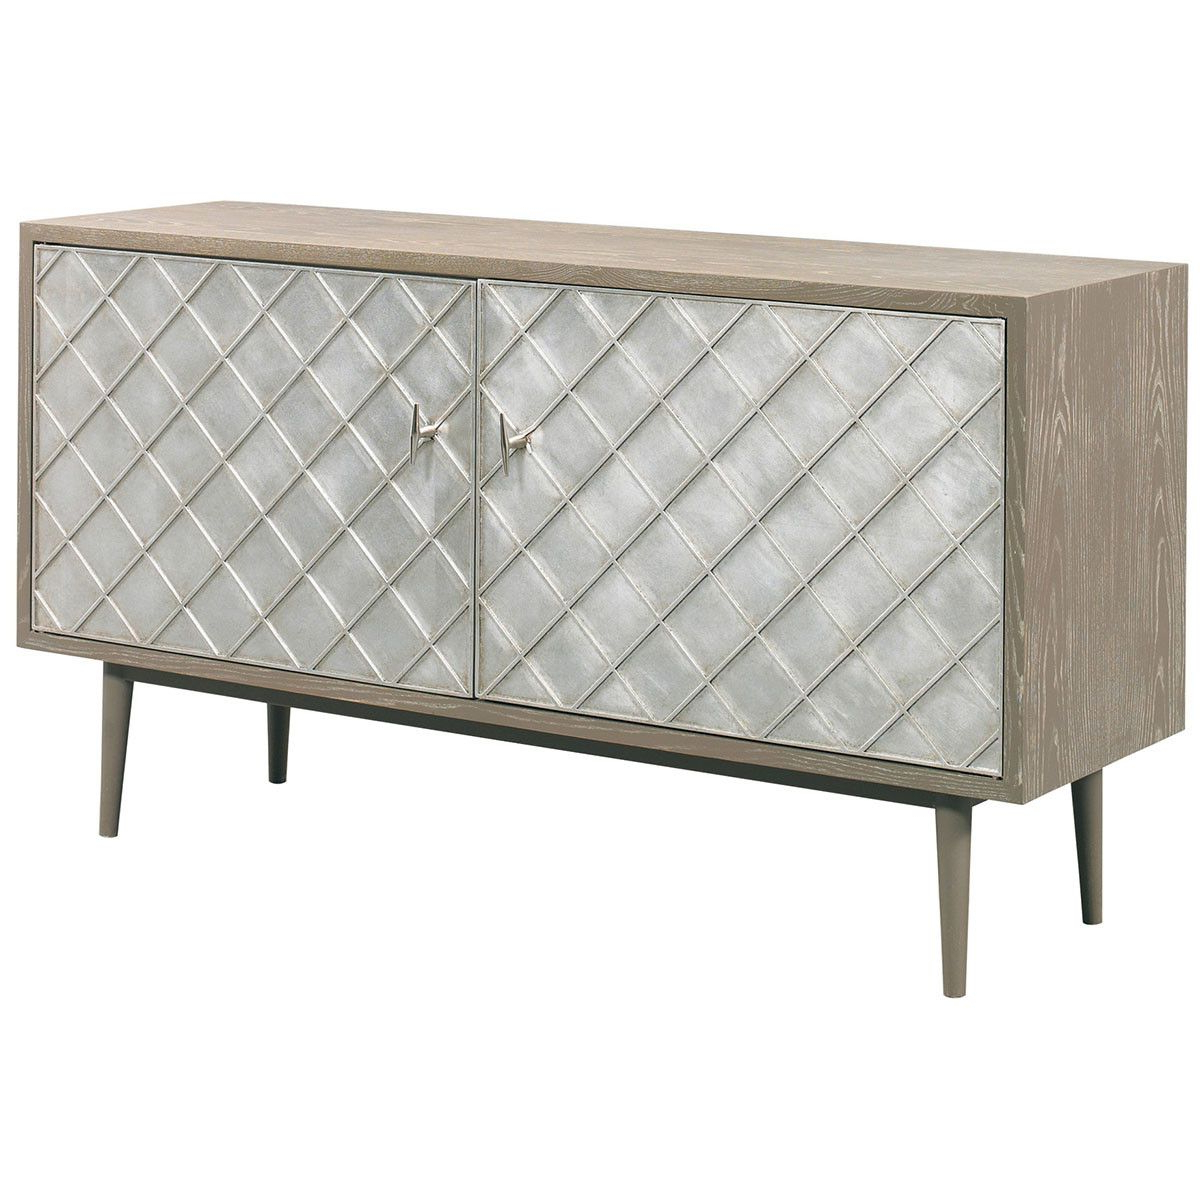 Cth Sherrill Occasional Vintage Made Modern Franco Media Cabinet Intended For Parsons Travertine Top & Dark Steel Base 48x16 Console Tables (View 10 of 20)